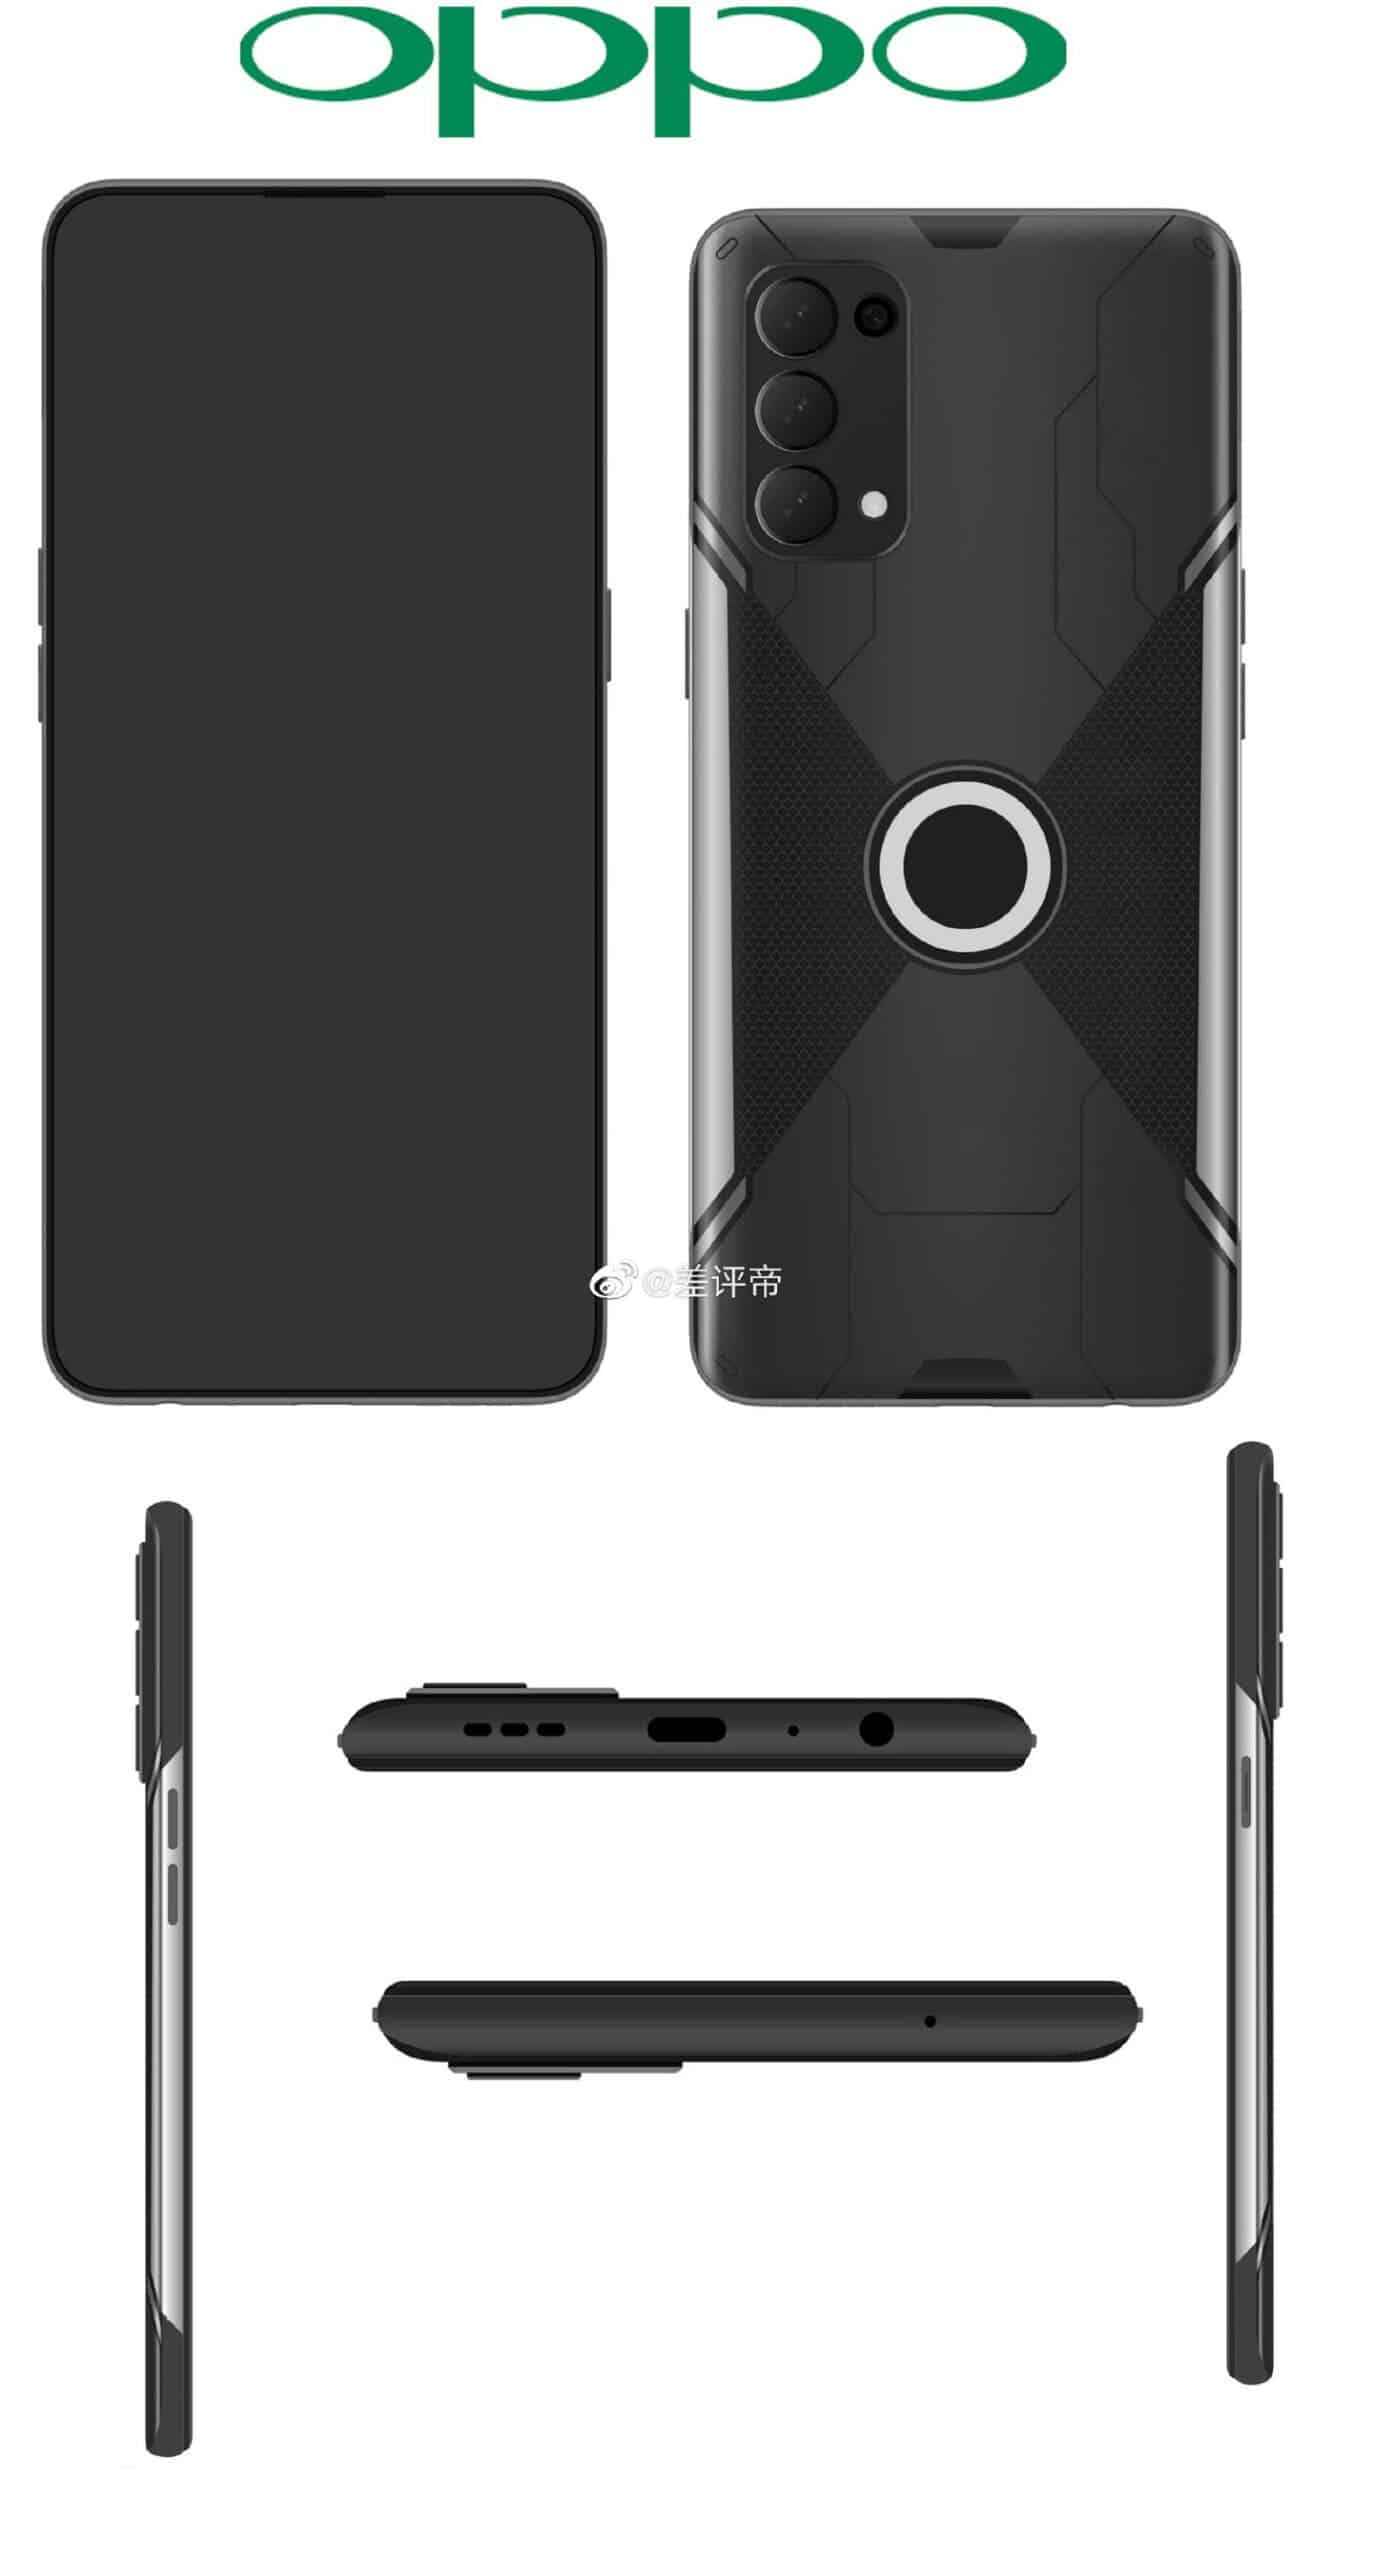 OPPO gaming smartphone